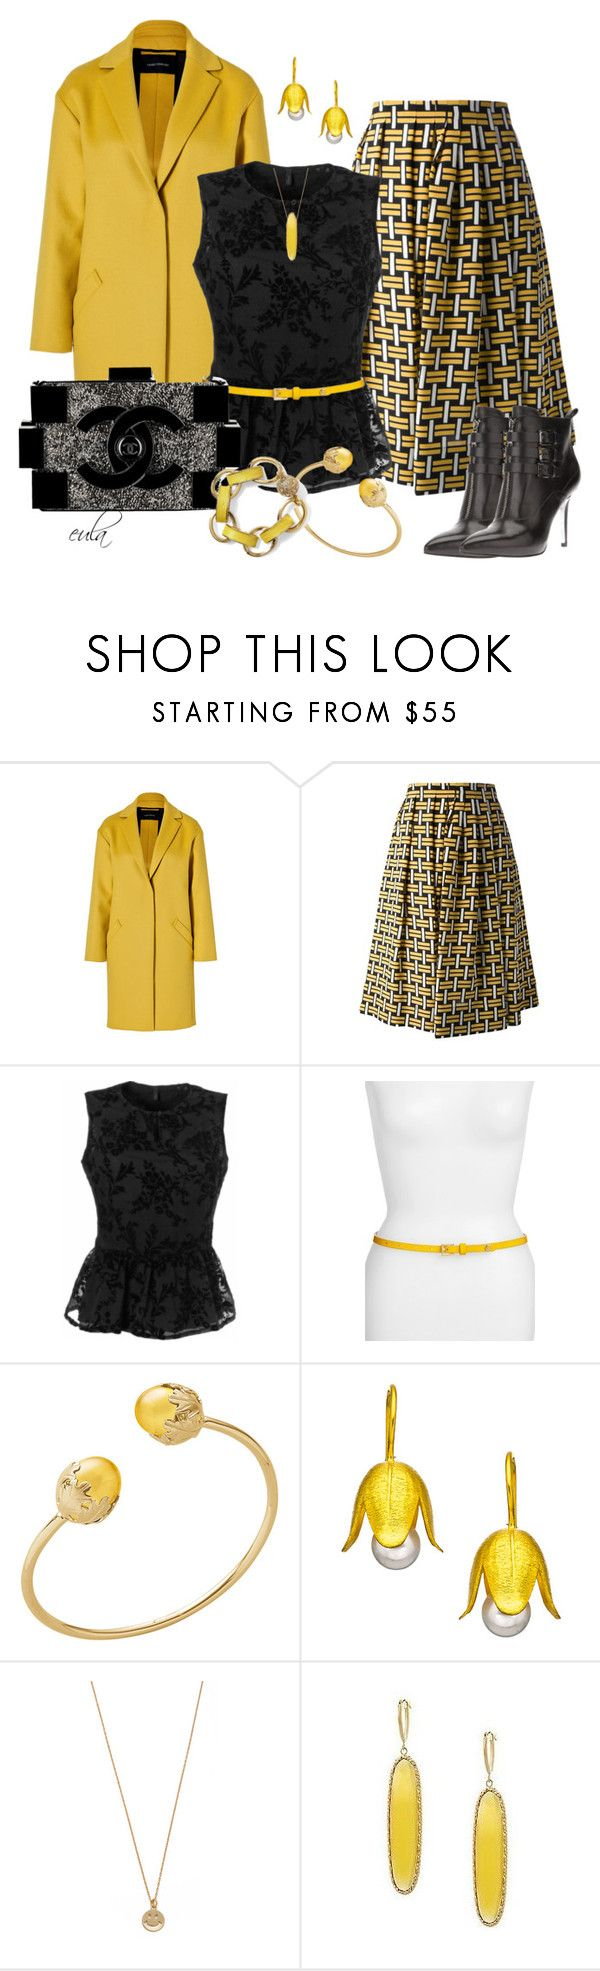 """""""The Chanel Lego Clutch Contest (Outfit Only)"""" by eula-eldridge-tolliver ❤ liked on Polyvore featuring Cédric Charlier, Fendi, Benetton, Tory Burch, Baccarat, Rena Luxx, Pim + Larkin, Bing Bang, VicenzaGold and MICHAEL Michael Kors"""